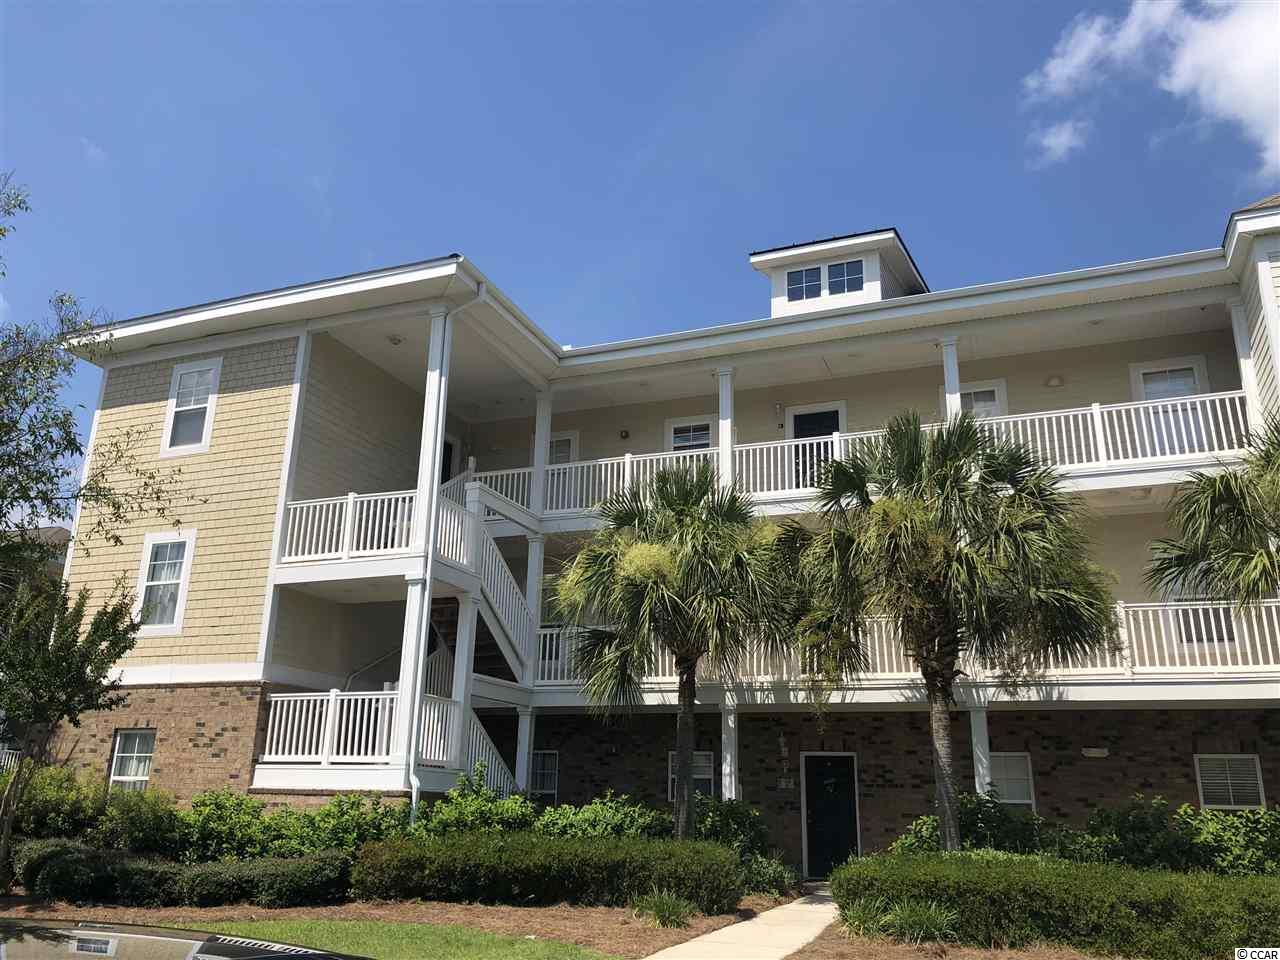 Top floor unit in Kiskadee Parke.  Balcony with pond view.  Are you looking for a unit close to Coastal Carolina or Horry Georgetown Tech?  This is it.  These are in high demand for student rentals and other local renters.  Located 10 miles to the beach.  Golfers.  Are you looking for a getaway at the beach?  This is located close to Wild Wing Plantation.  The refrigerator, washer and dryer are included.  Vaulted ceilings.  The property is rented on a month to month lease. The current tenant would be willing to stay and lease back. if you are buying for investment.